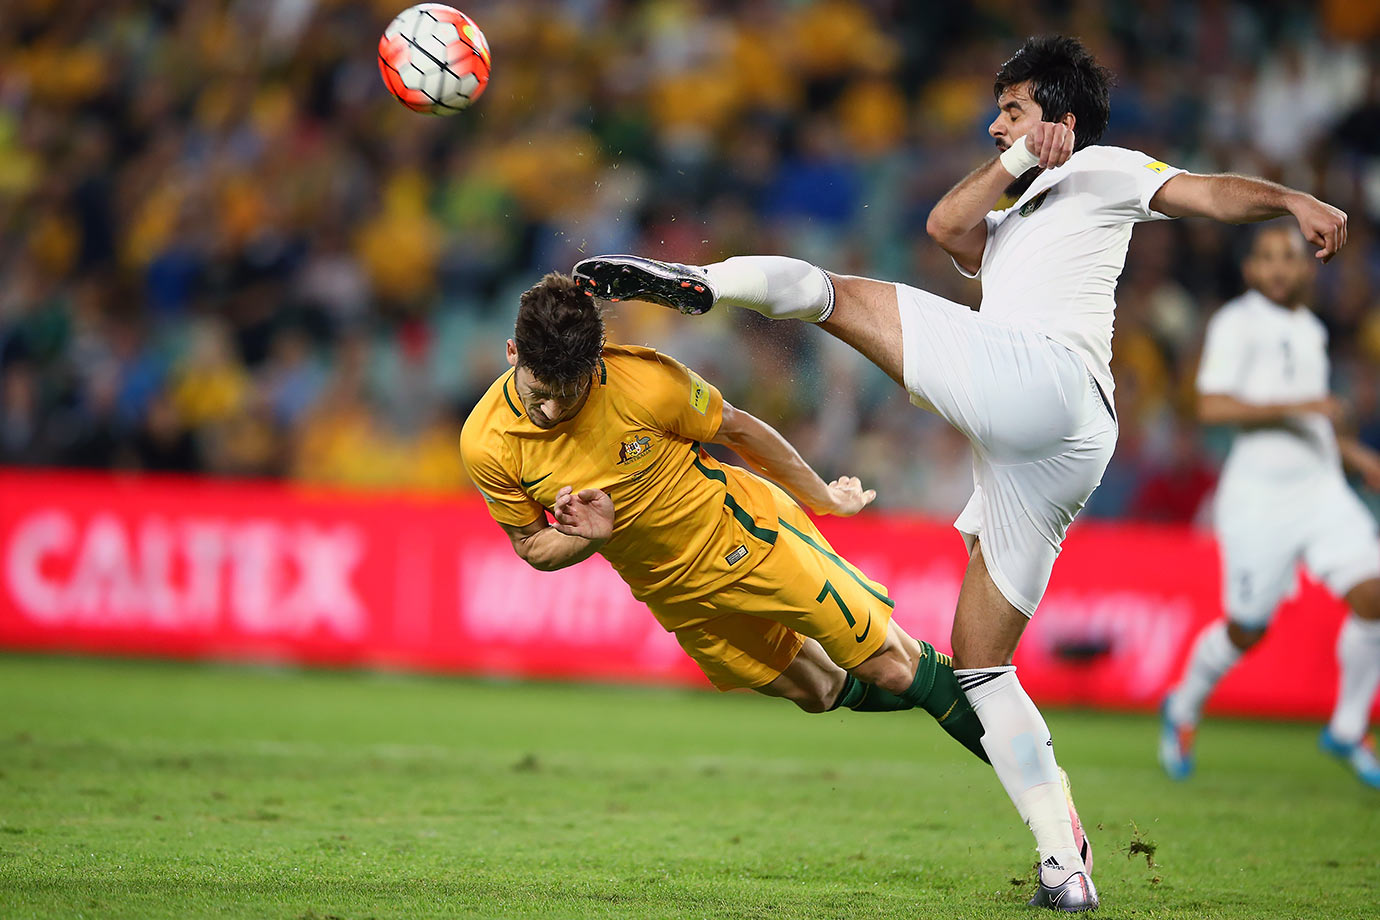 Australia's Mathew Leckie dives to head the ball as it is cleared by Jordan's Mohammad Al Basha during their 2018 FIFA World Cup Russia Qualifiers match in Sydney, Australia.